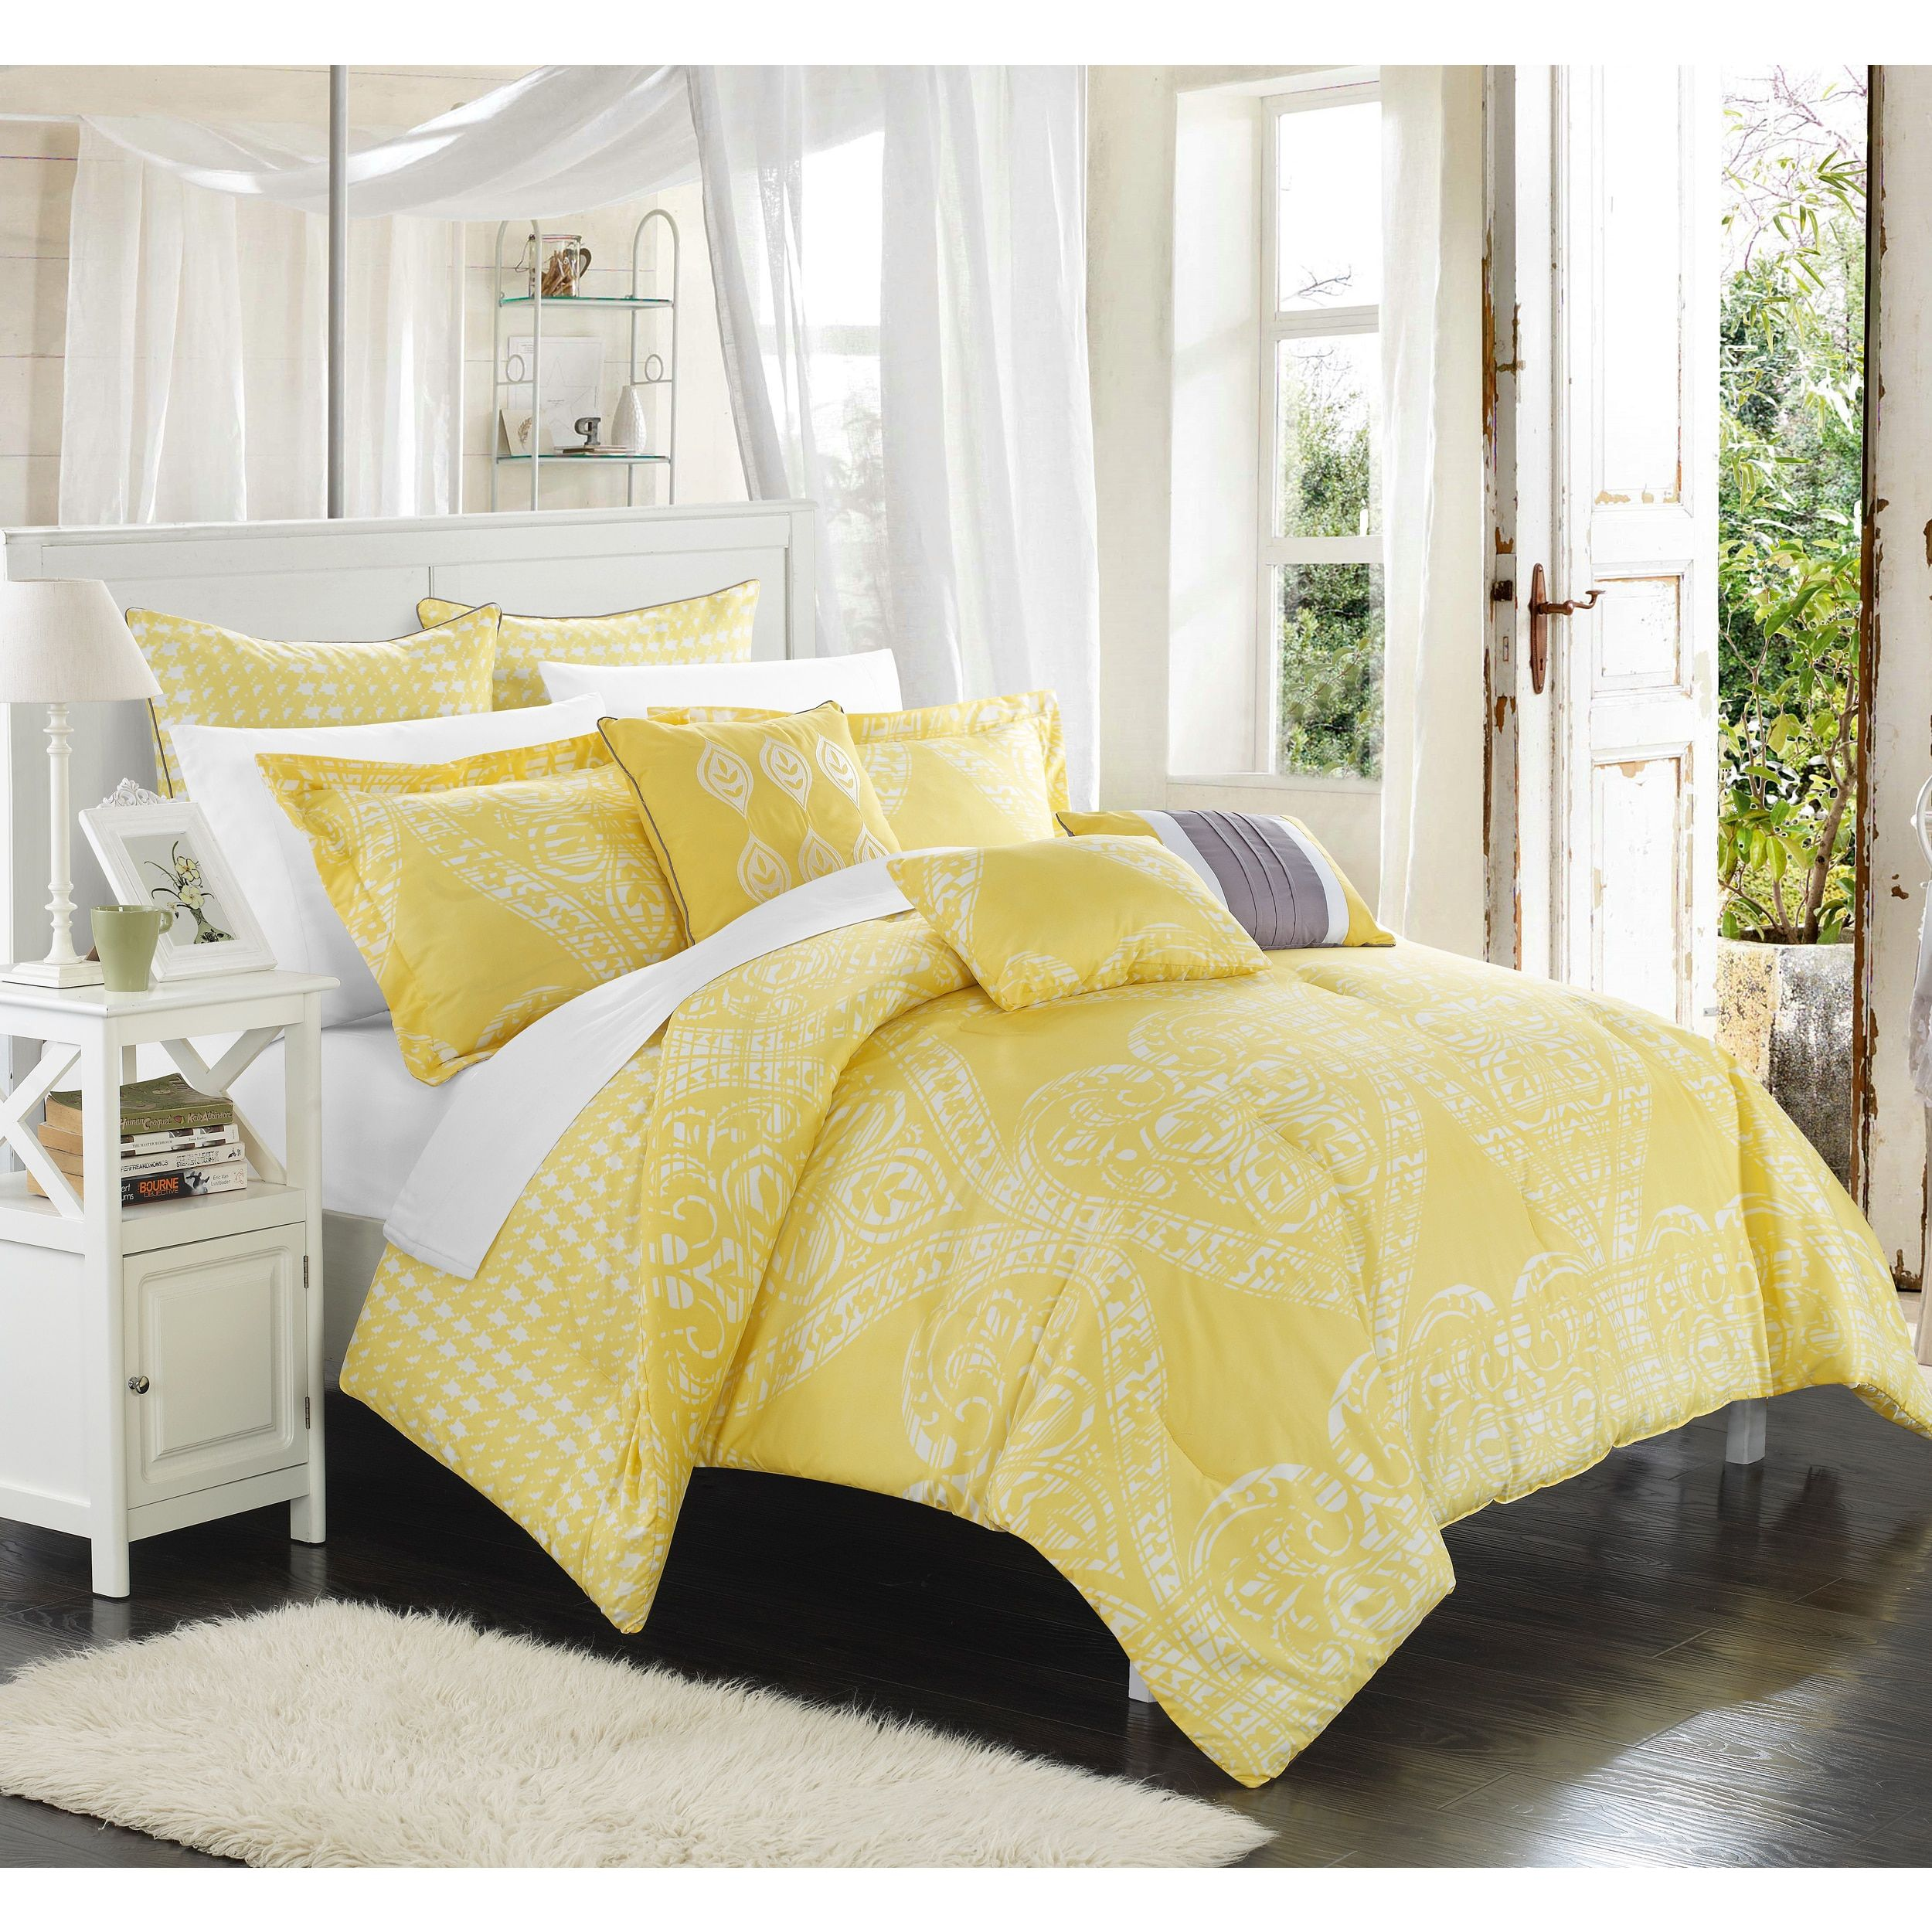 Overstock Com Online Shopping Bedding Furniture Electronics Jewelry Clothing More Yellow Bedding Comforter Sets Chic Home